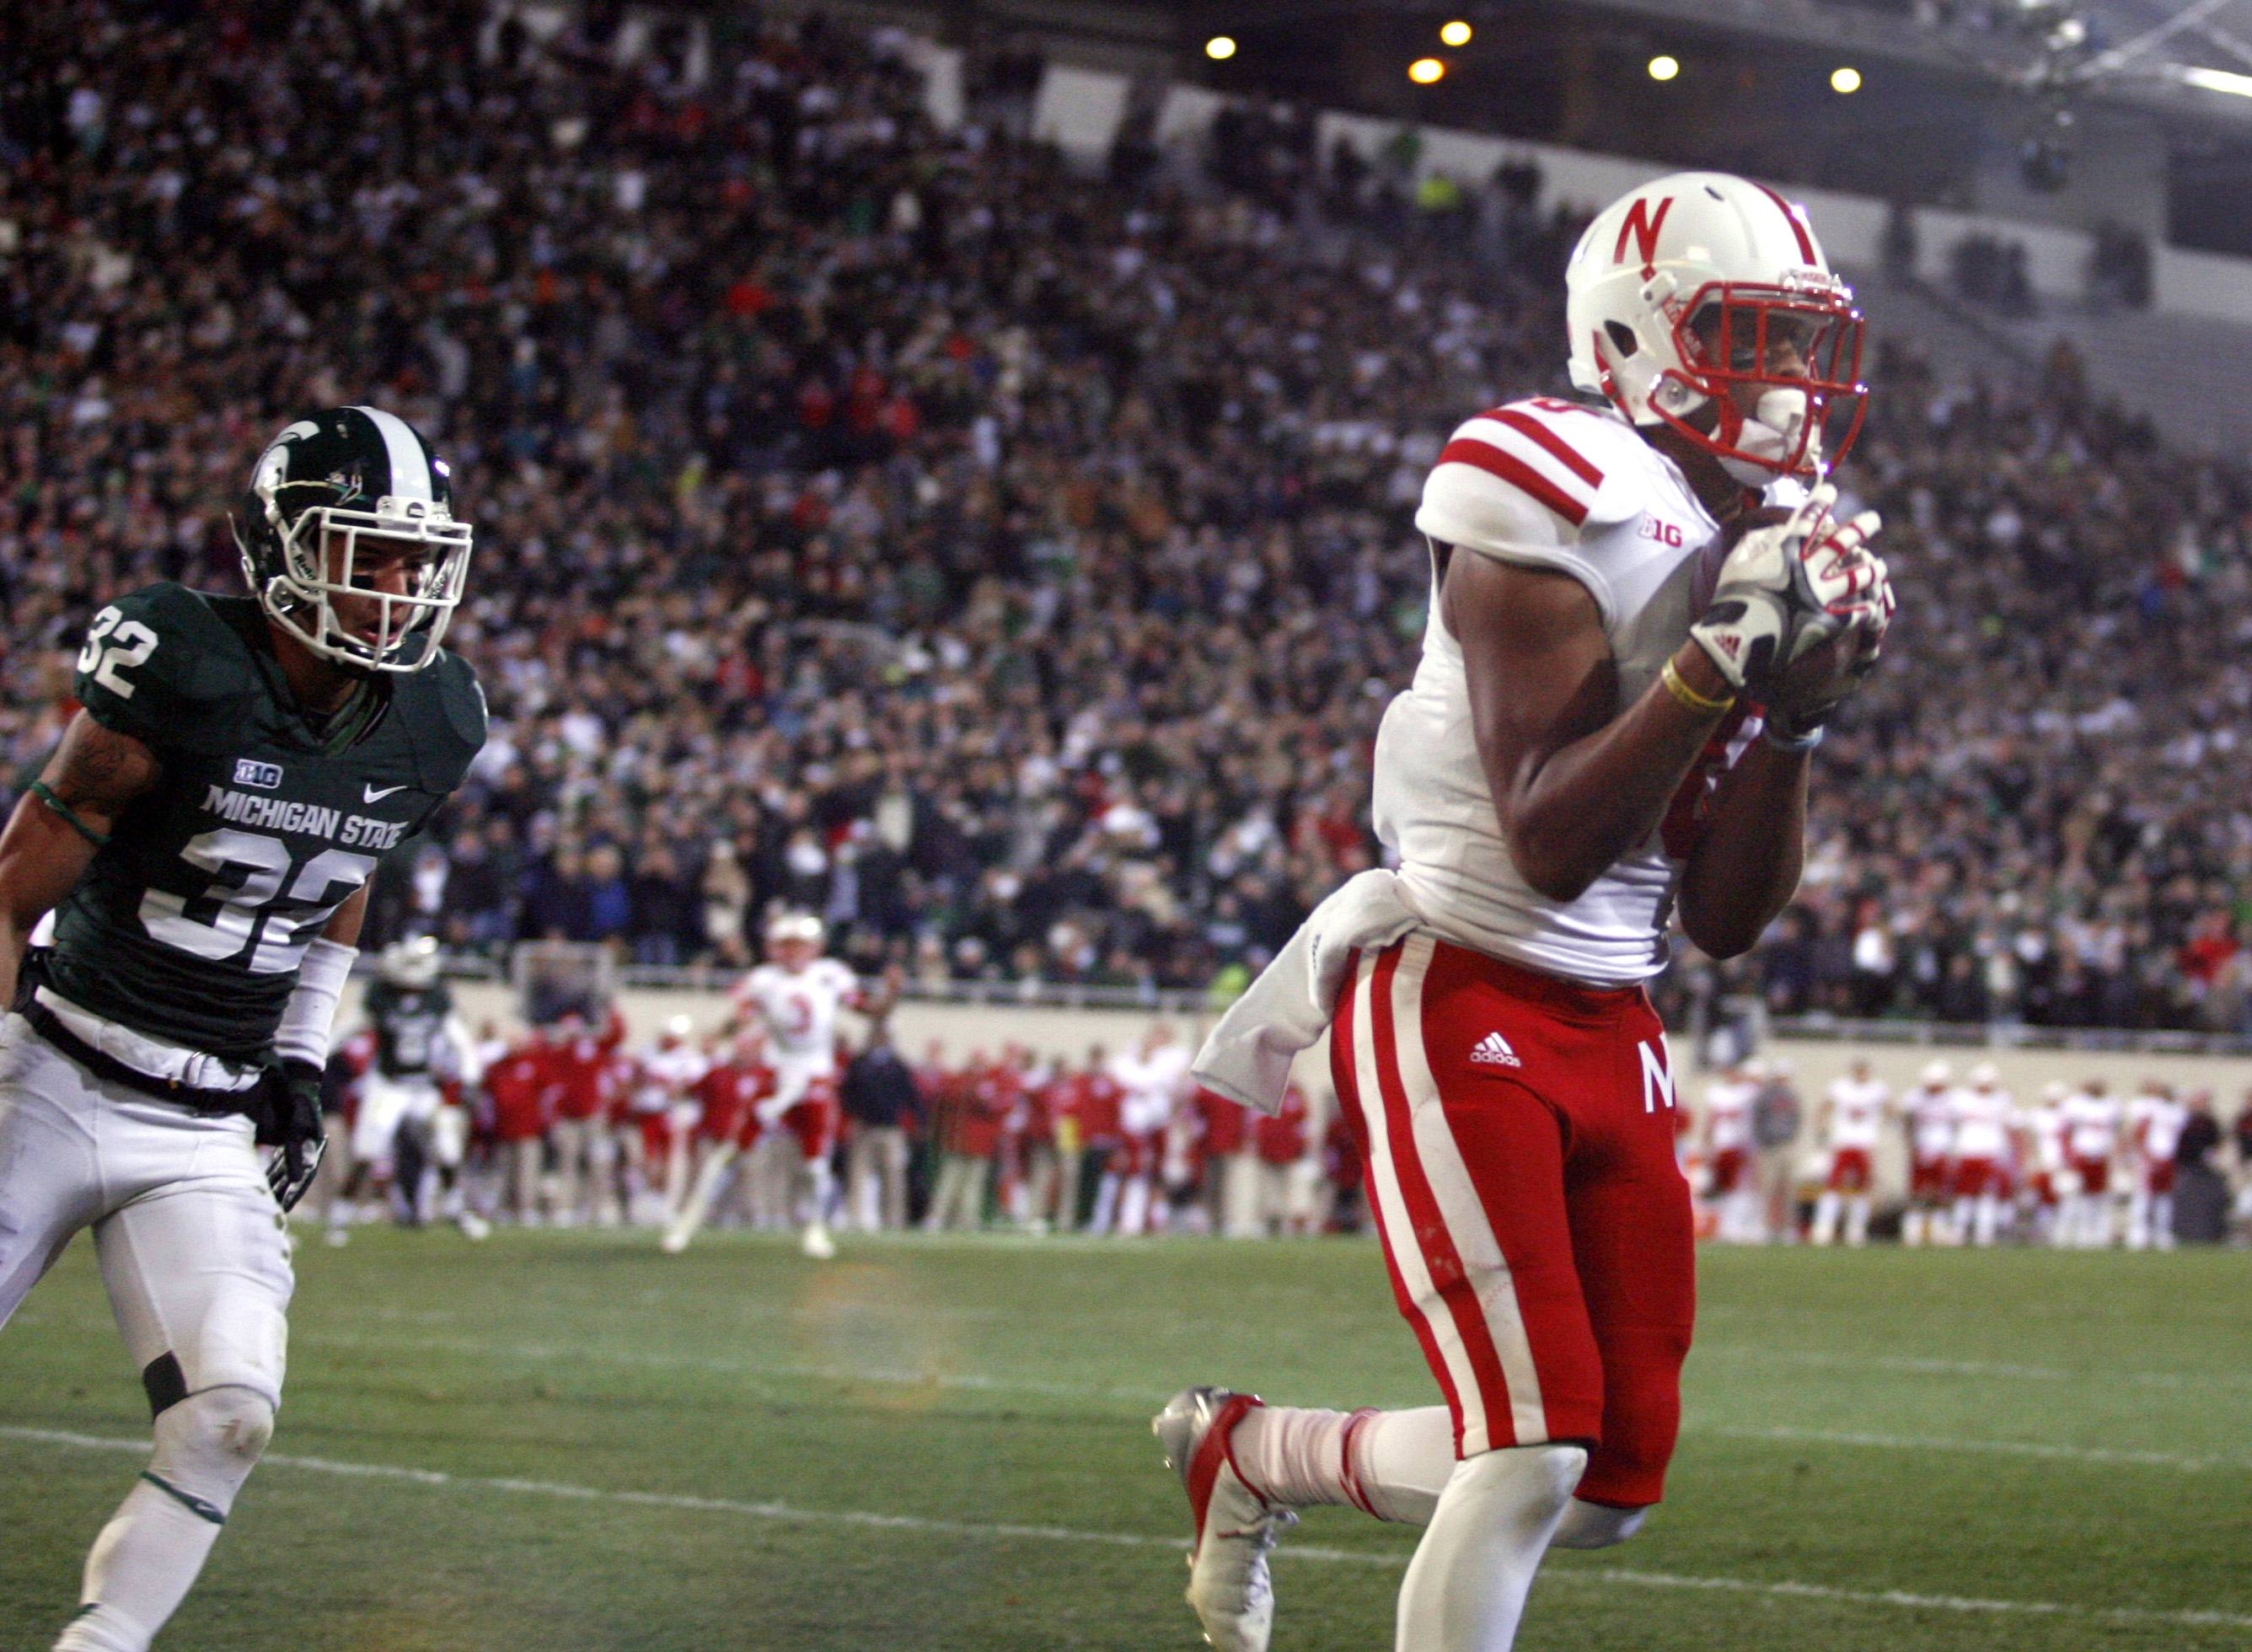 Nebraska receiver Jamal Turner catches the game-winning touchdown pass against Michigan State's Mitchell White with seconds remaining Saturday in the fourth quarter in East Lansing, Mich. Nebraska won 28-24.